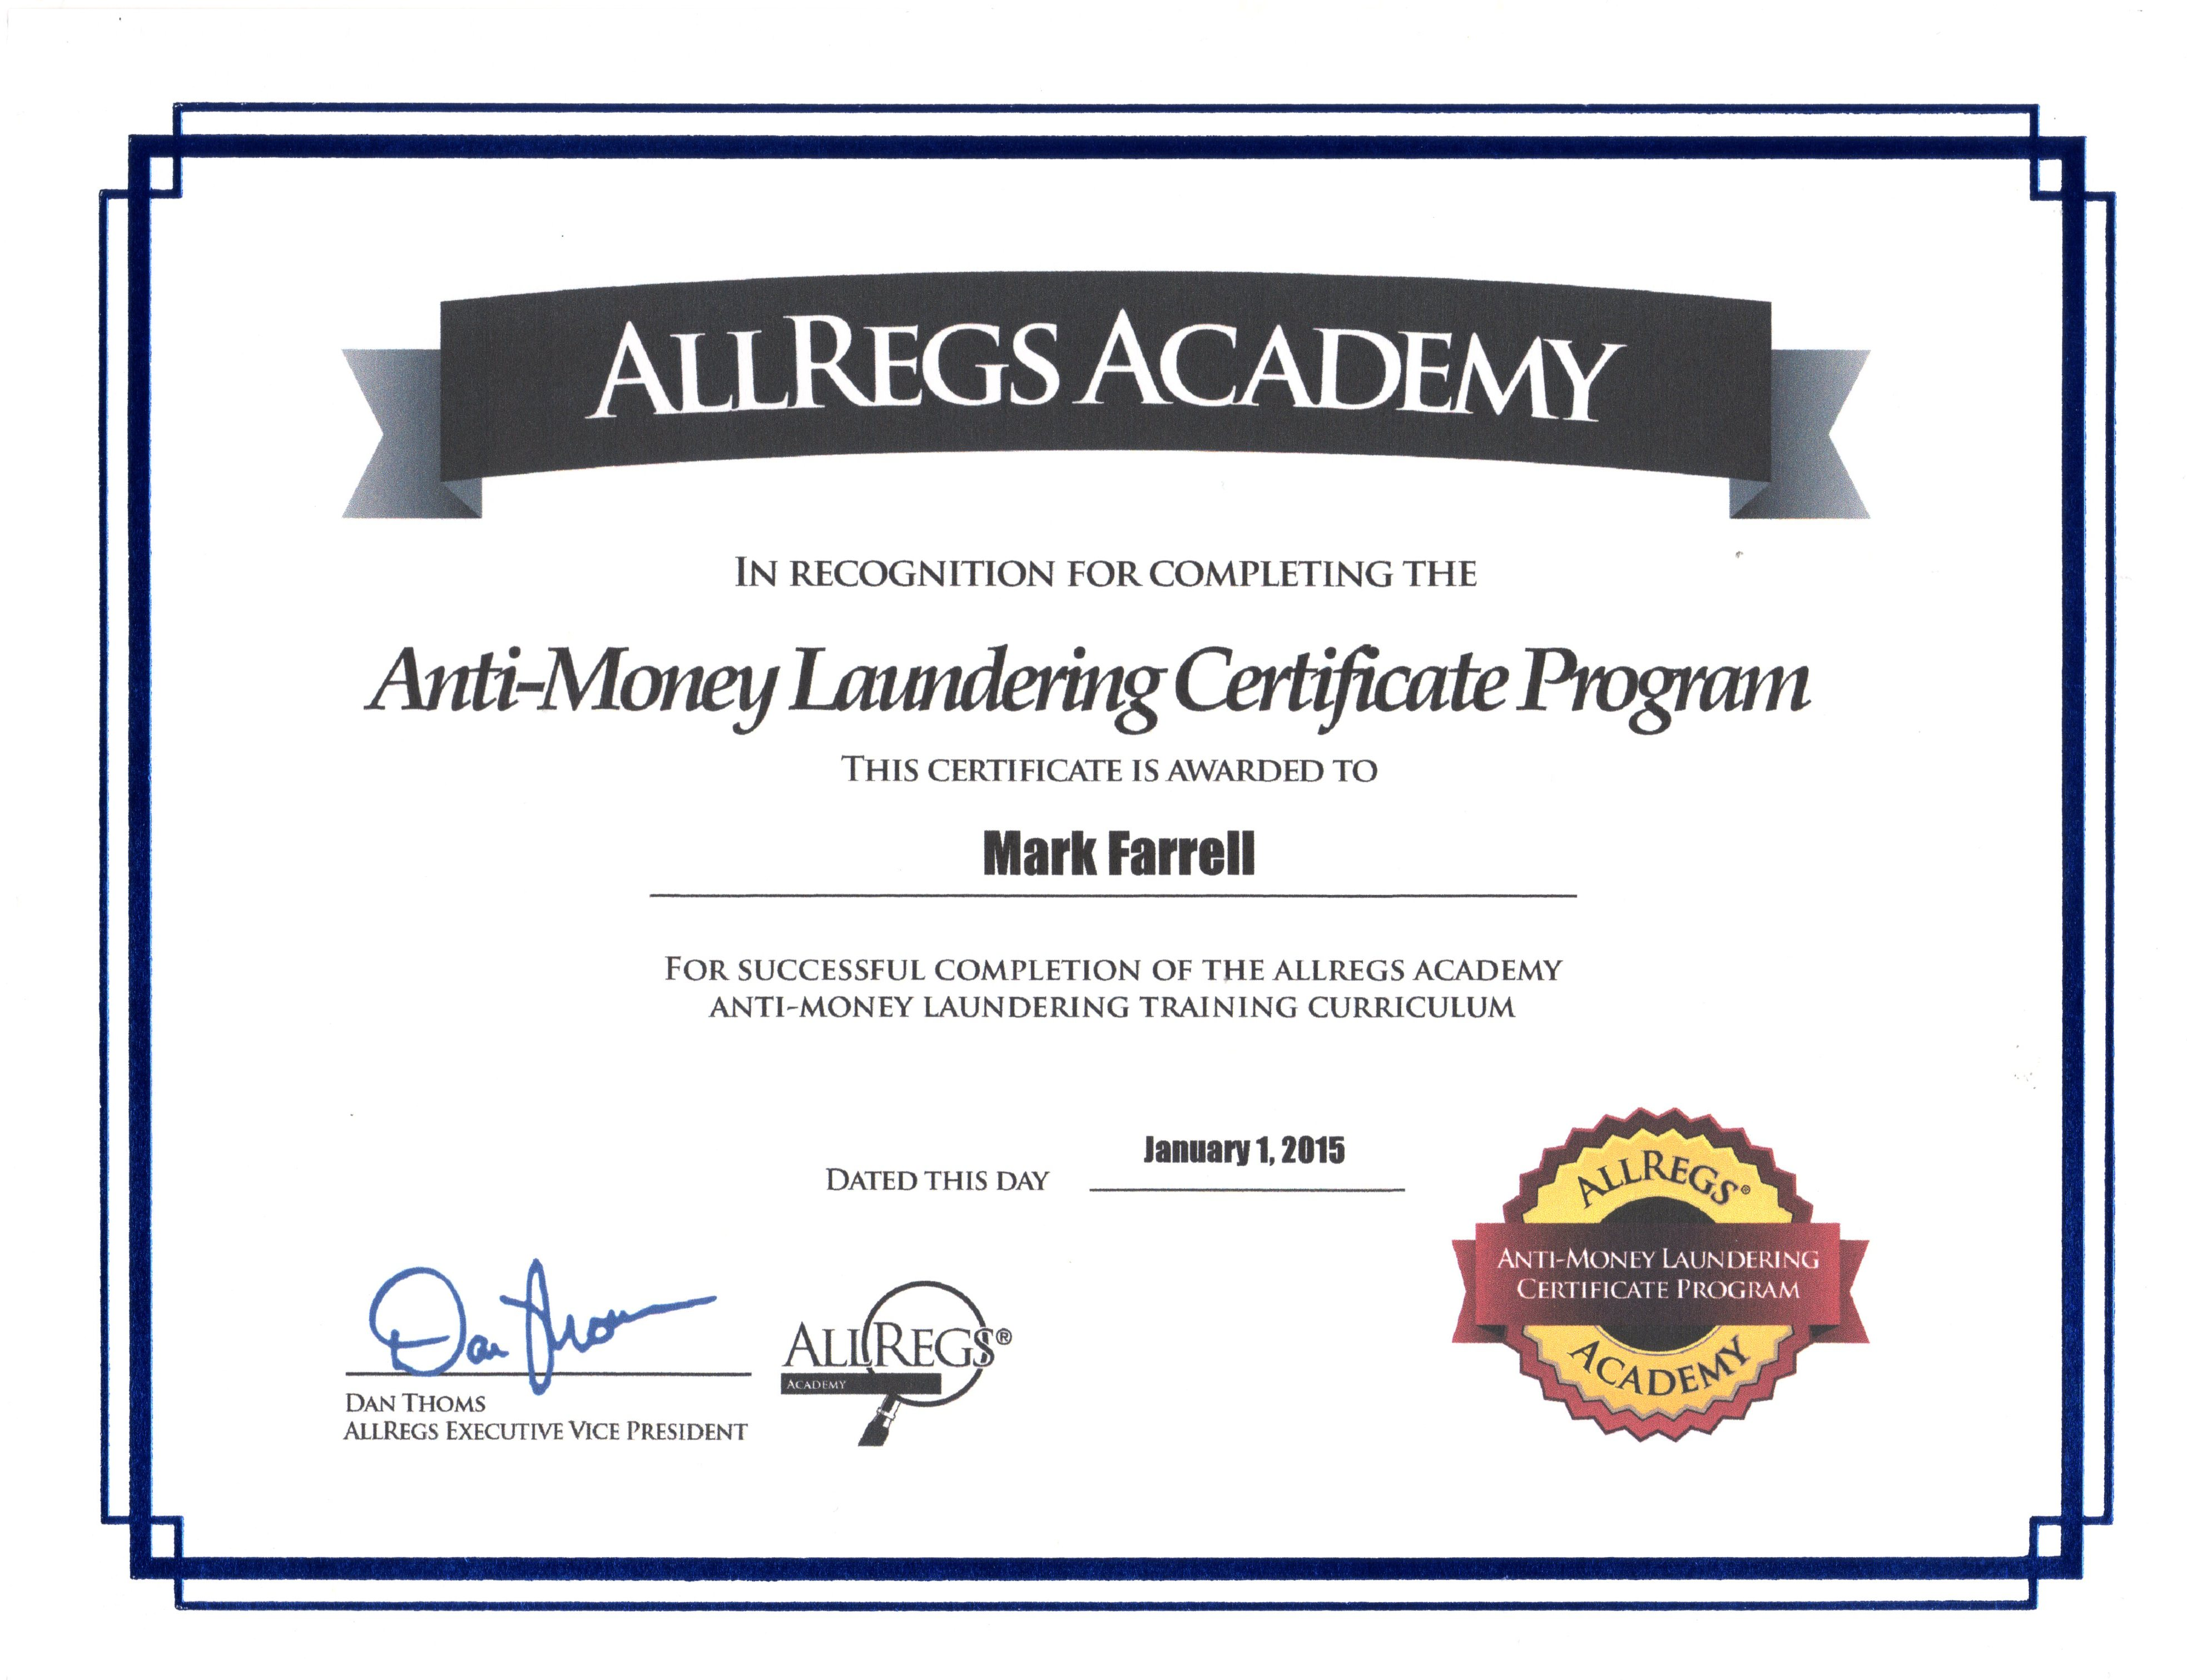 Certifications mark p farrells e resume the anti money laundering certificate program offered by allregs academy was provided for satisfactorily completing the three separate certificate courses 1betcityfo Image collections